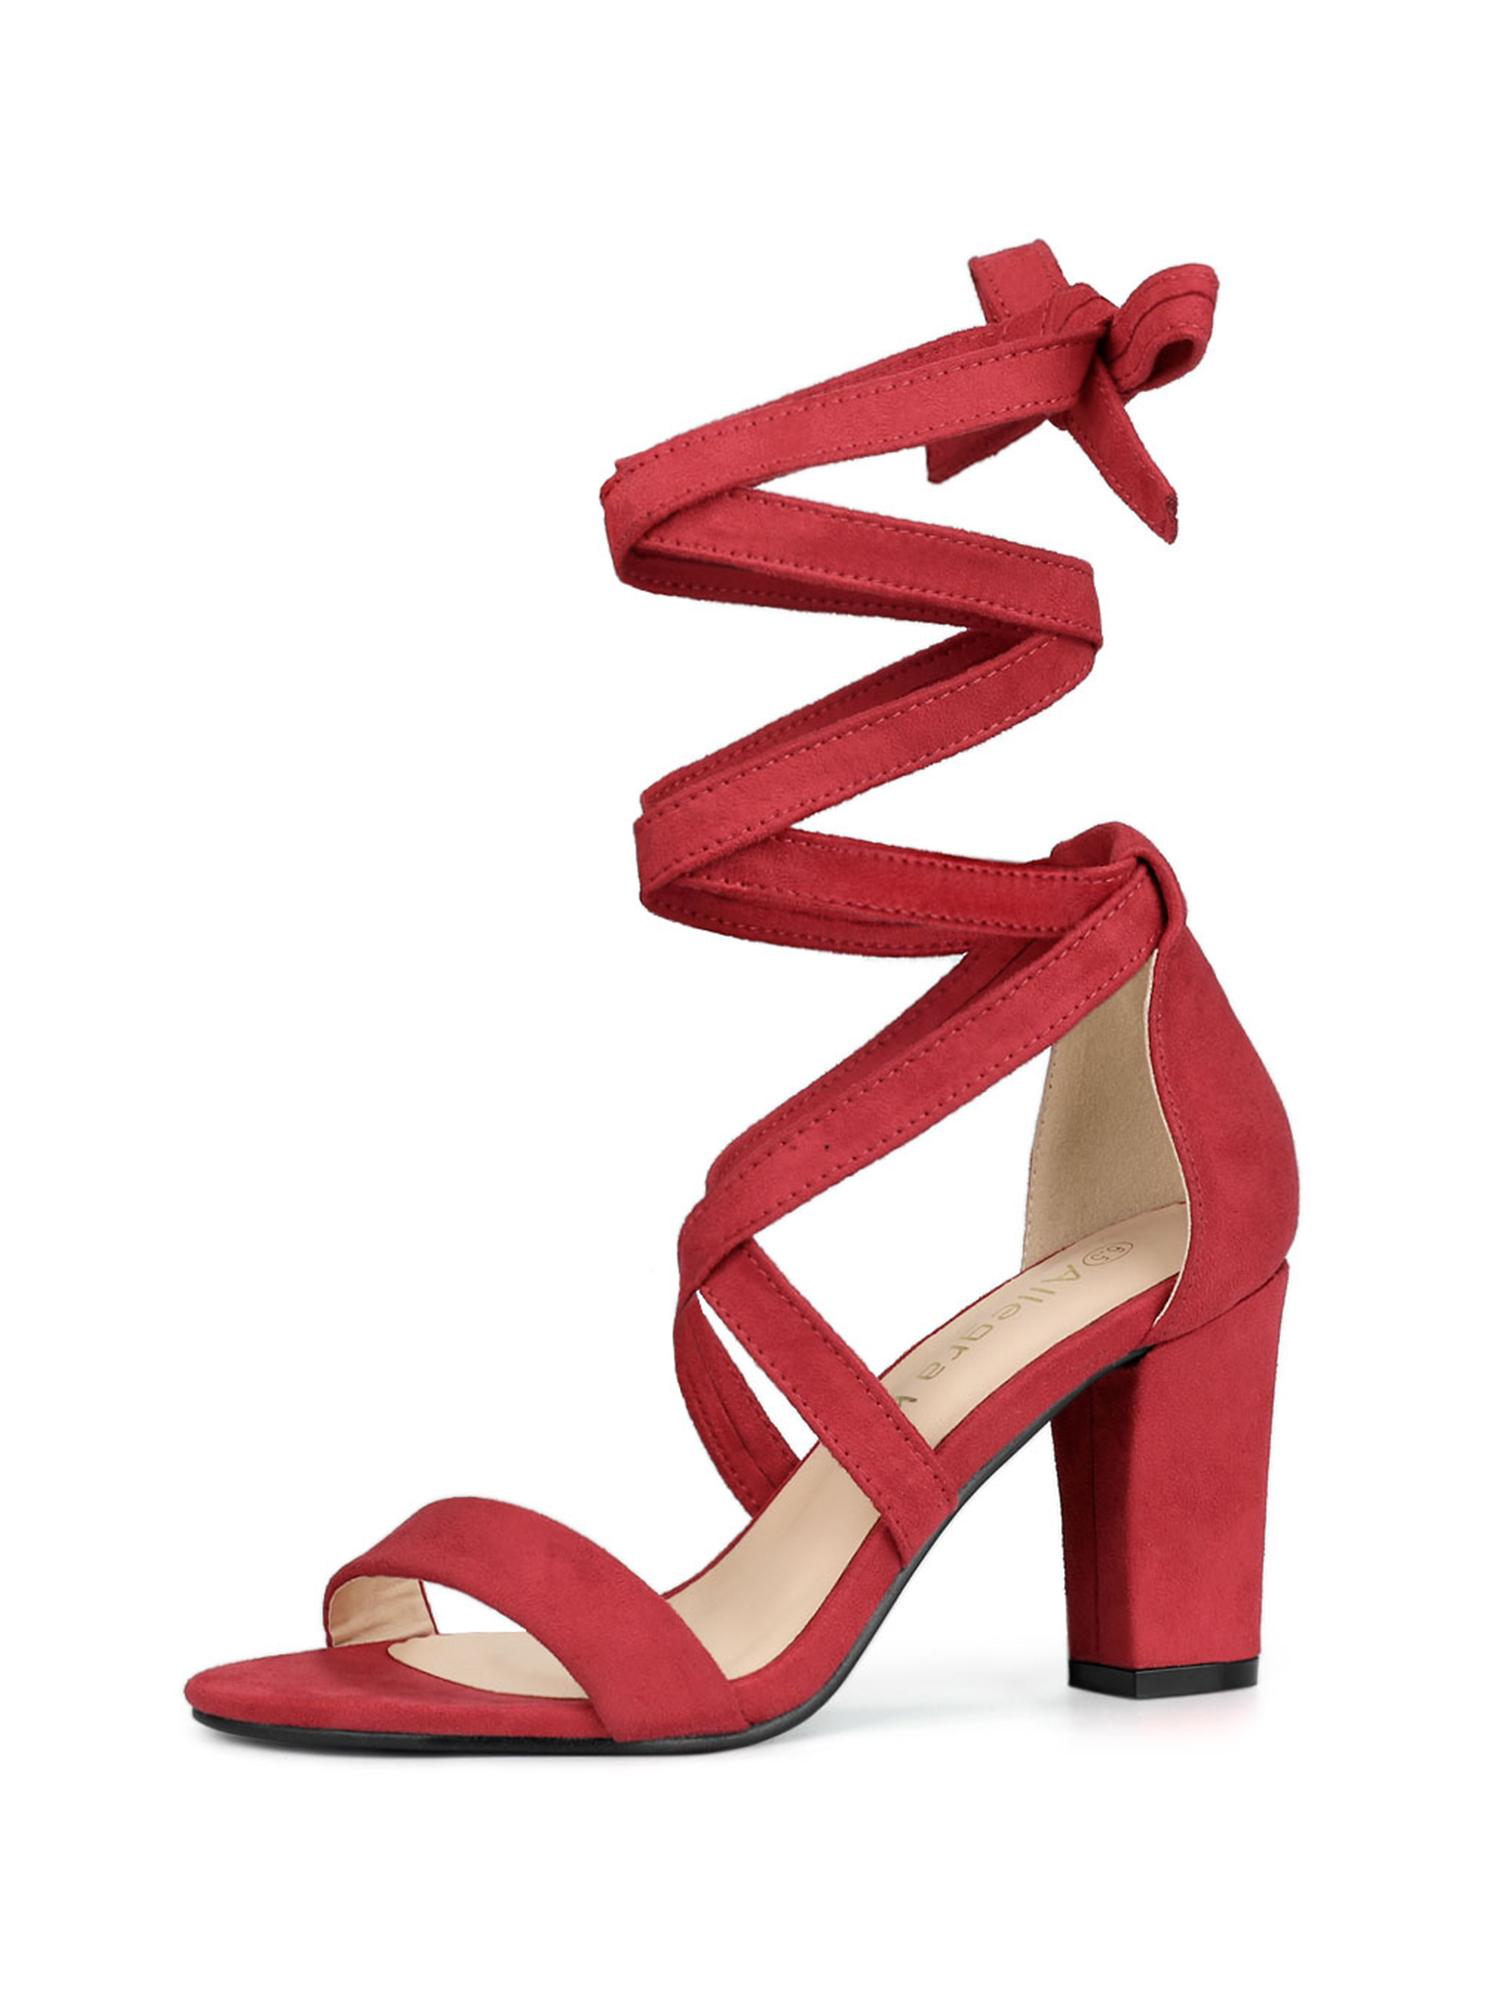 Lace Up Mid Block Heels Sandals Red